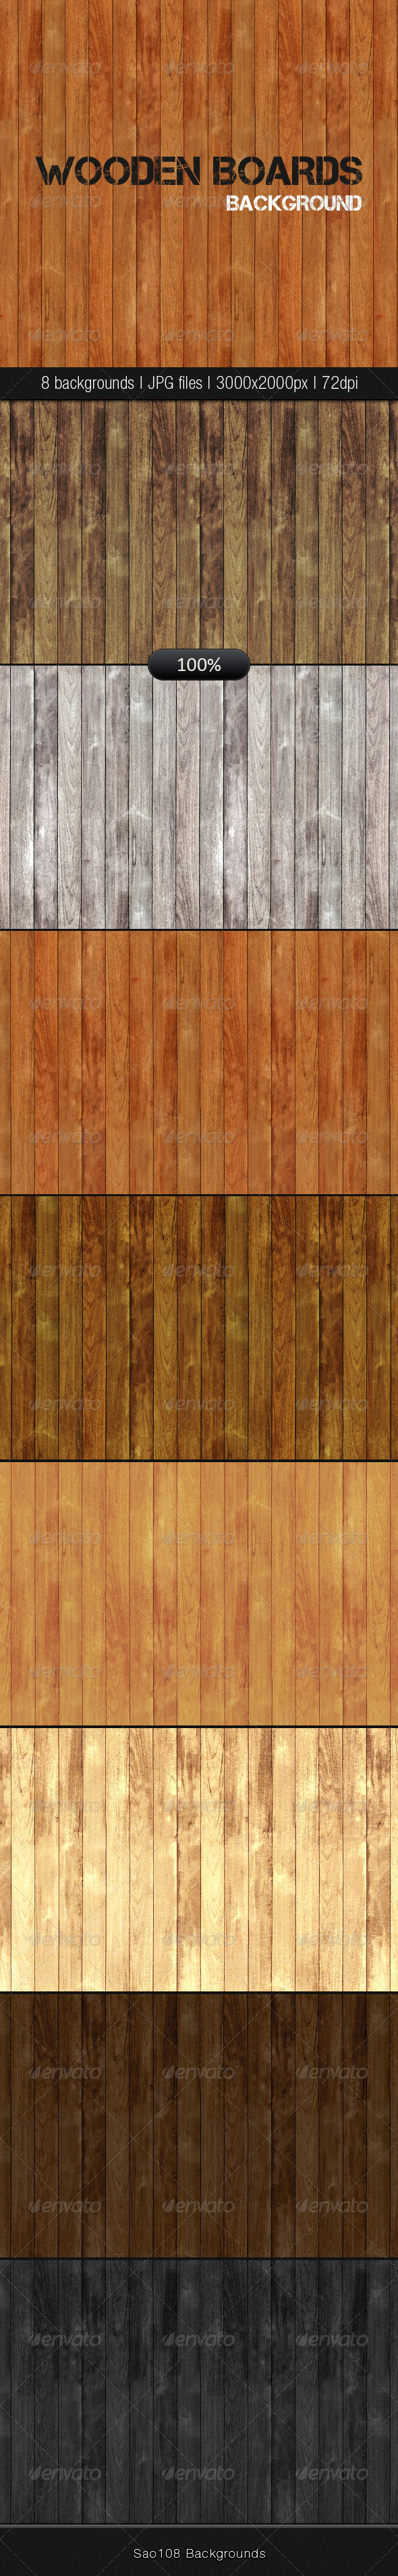 GraphicRiver Wooden Boards Background 4117648